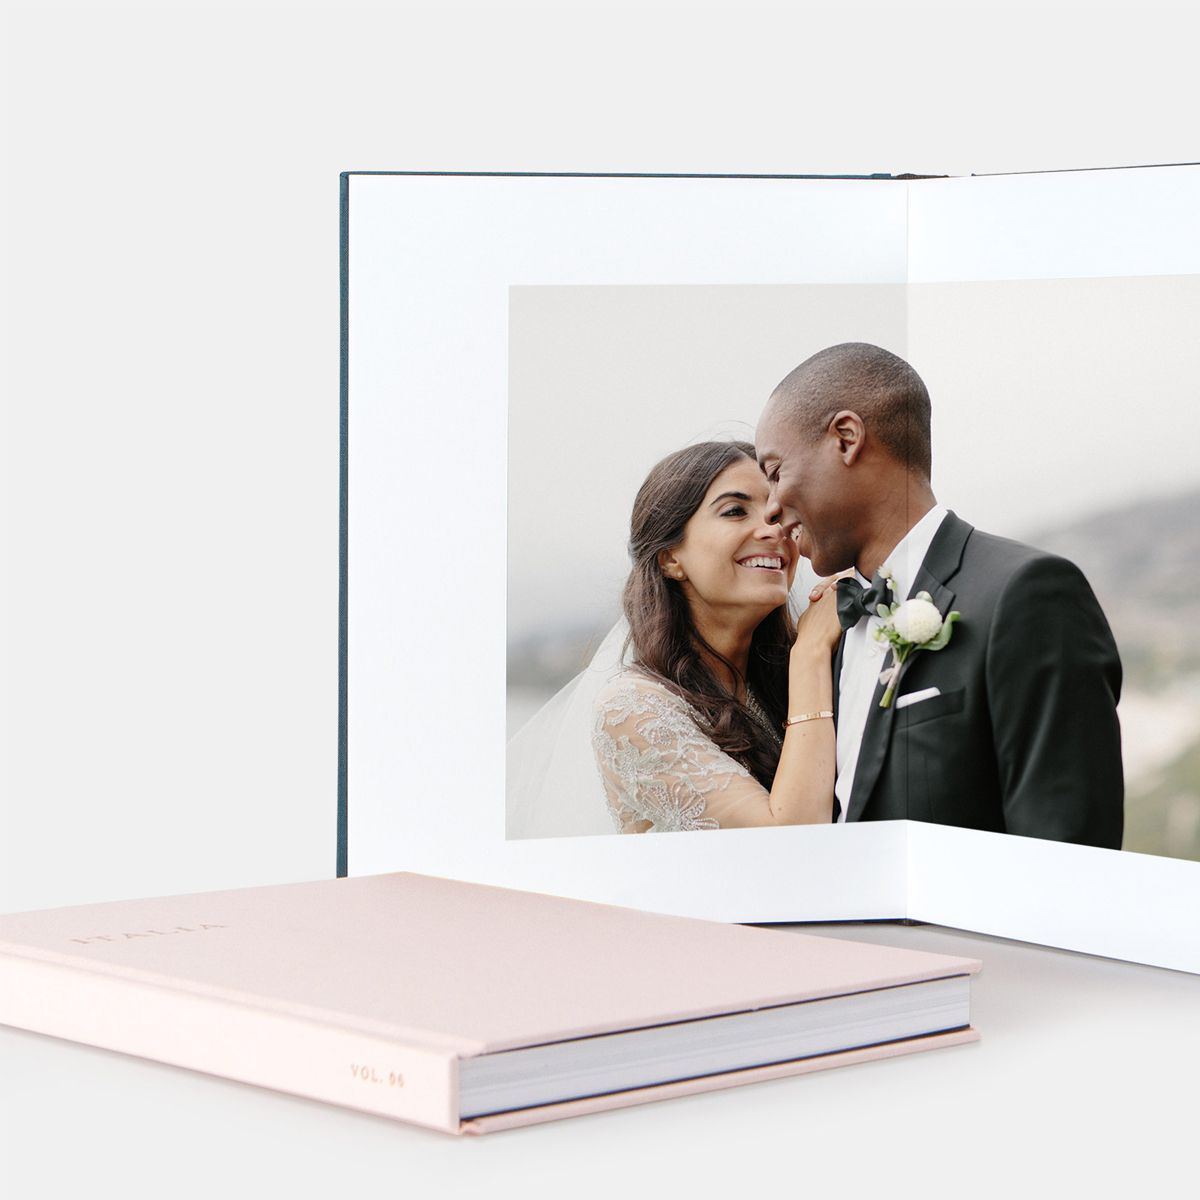 The Photographs - You'll receive your images via an online gallery where you can easily download, share with family & friends, and even order prints & canvases. Your photos will be preserved in a beautifully printed DVD for you to keep & make prints to your heart's desire for years down the road.